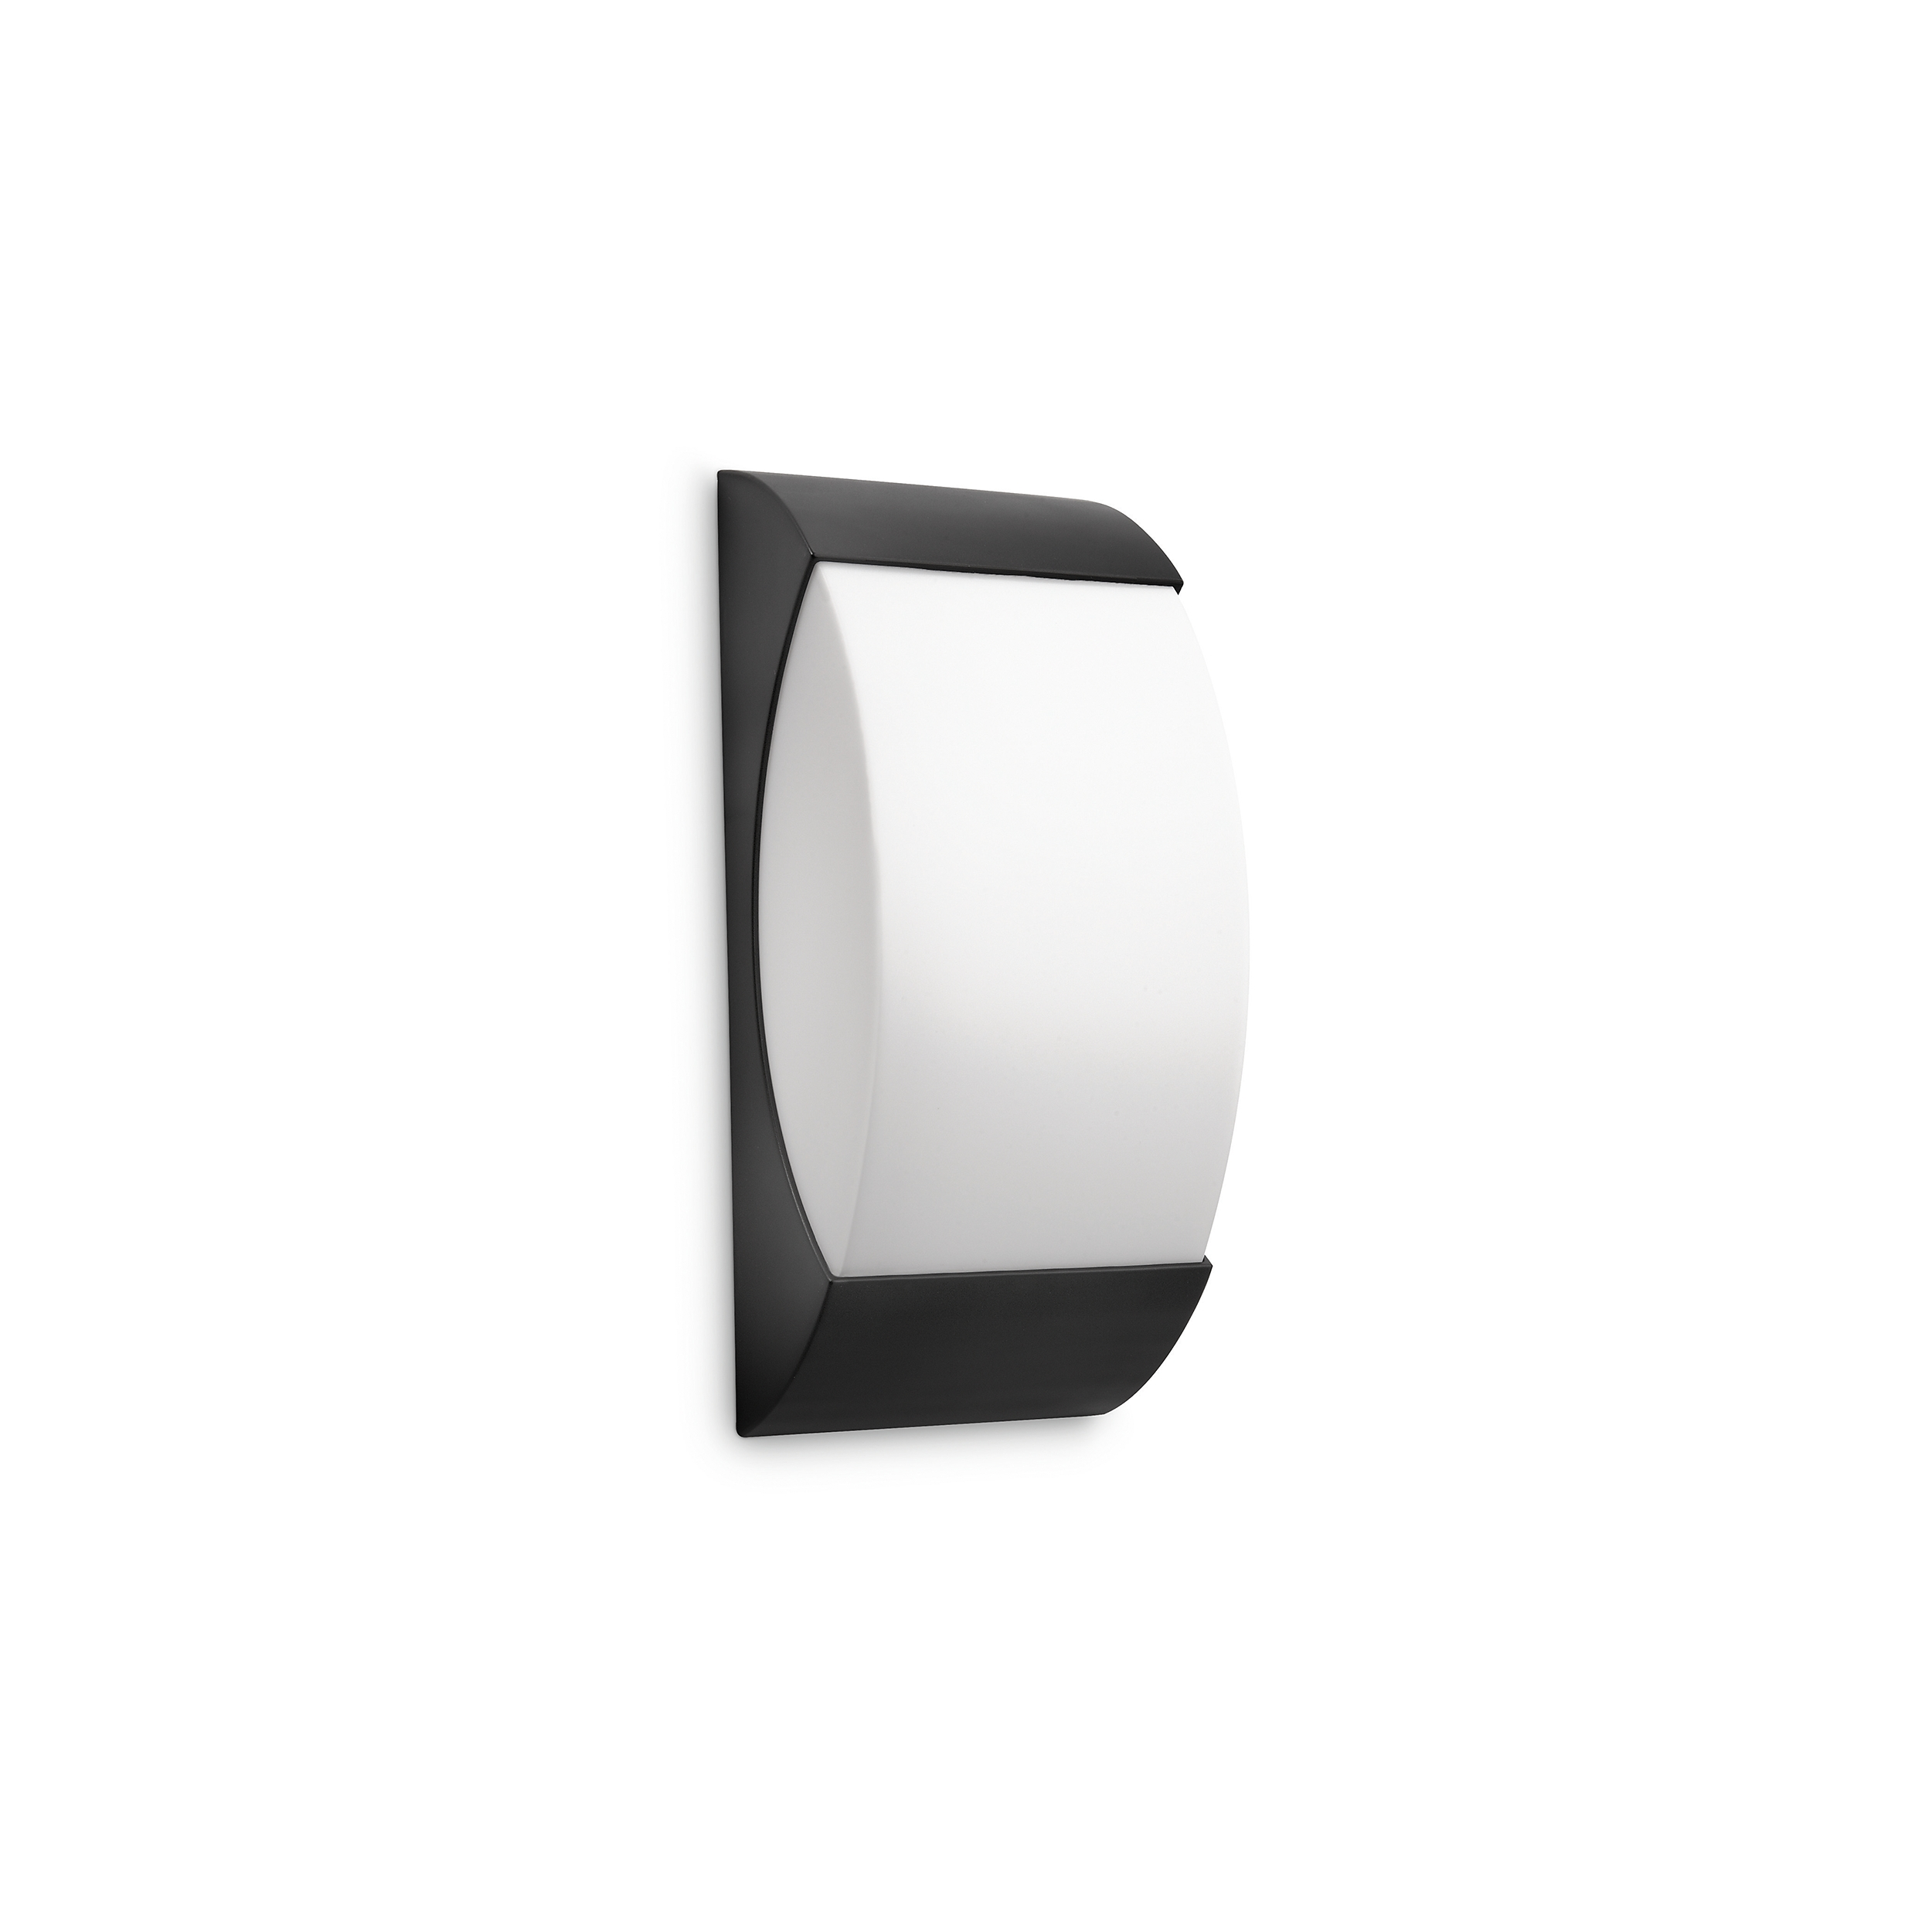 Philips myGarden Starry Black Garden Wall Light Outdoor Patio Low Energy Lamp eBay